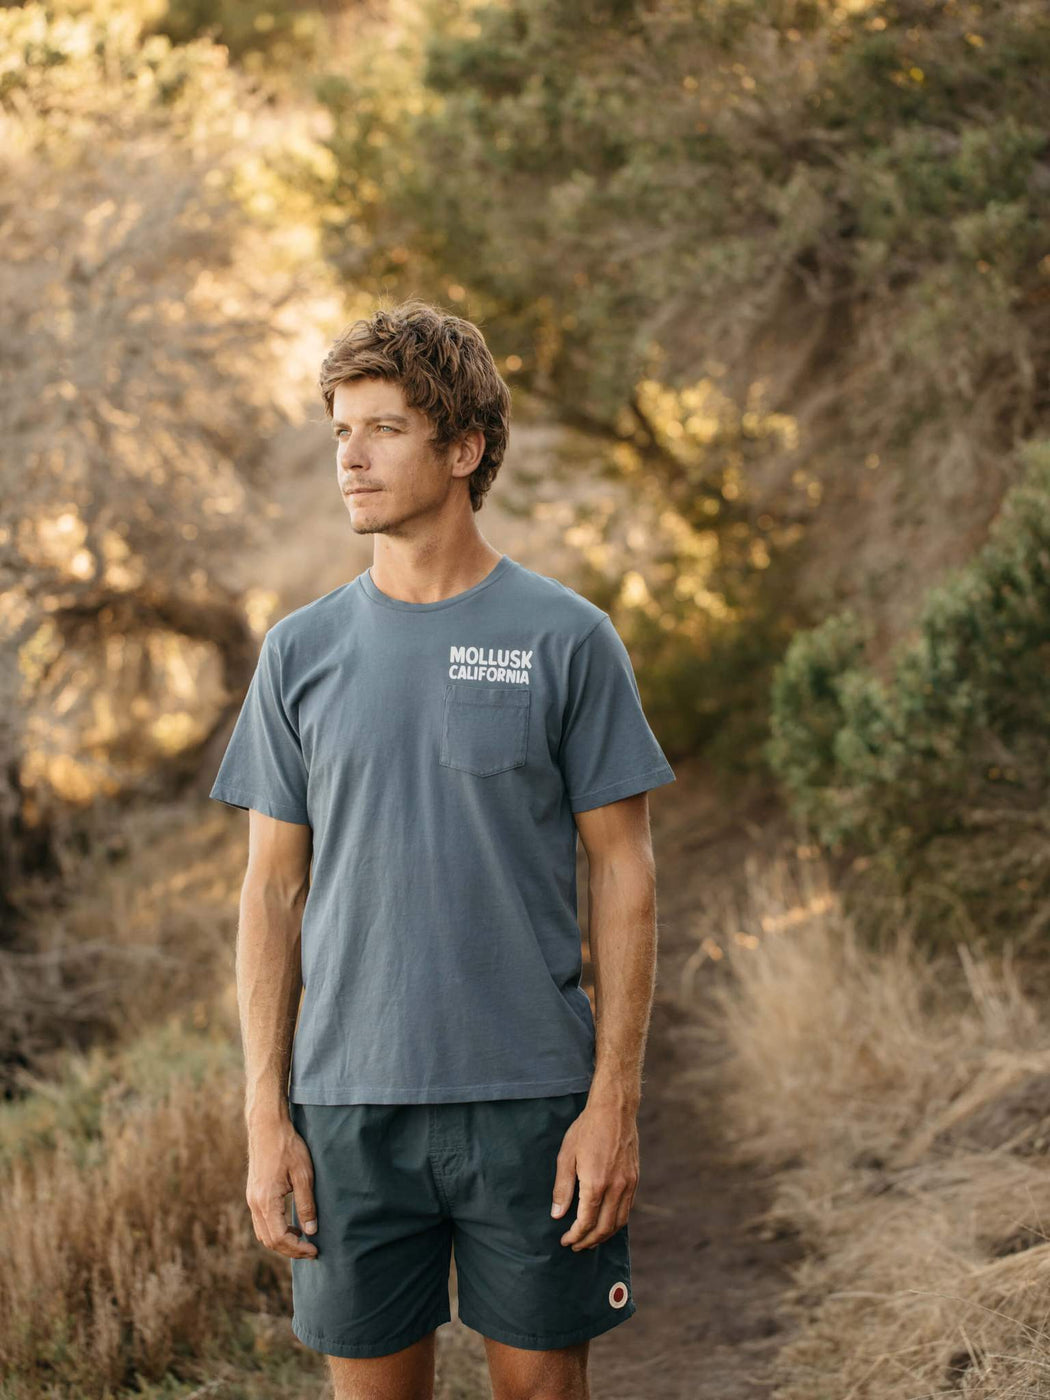 Mollusk Men'sSurf Supply Tee in Faded Navy